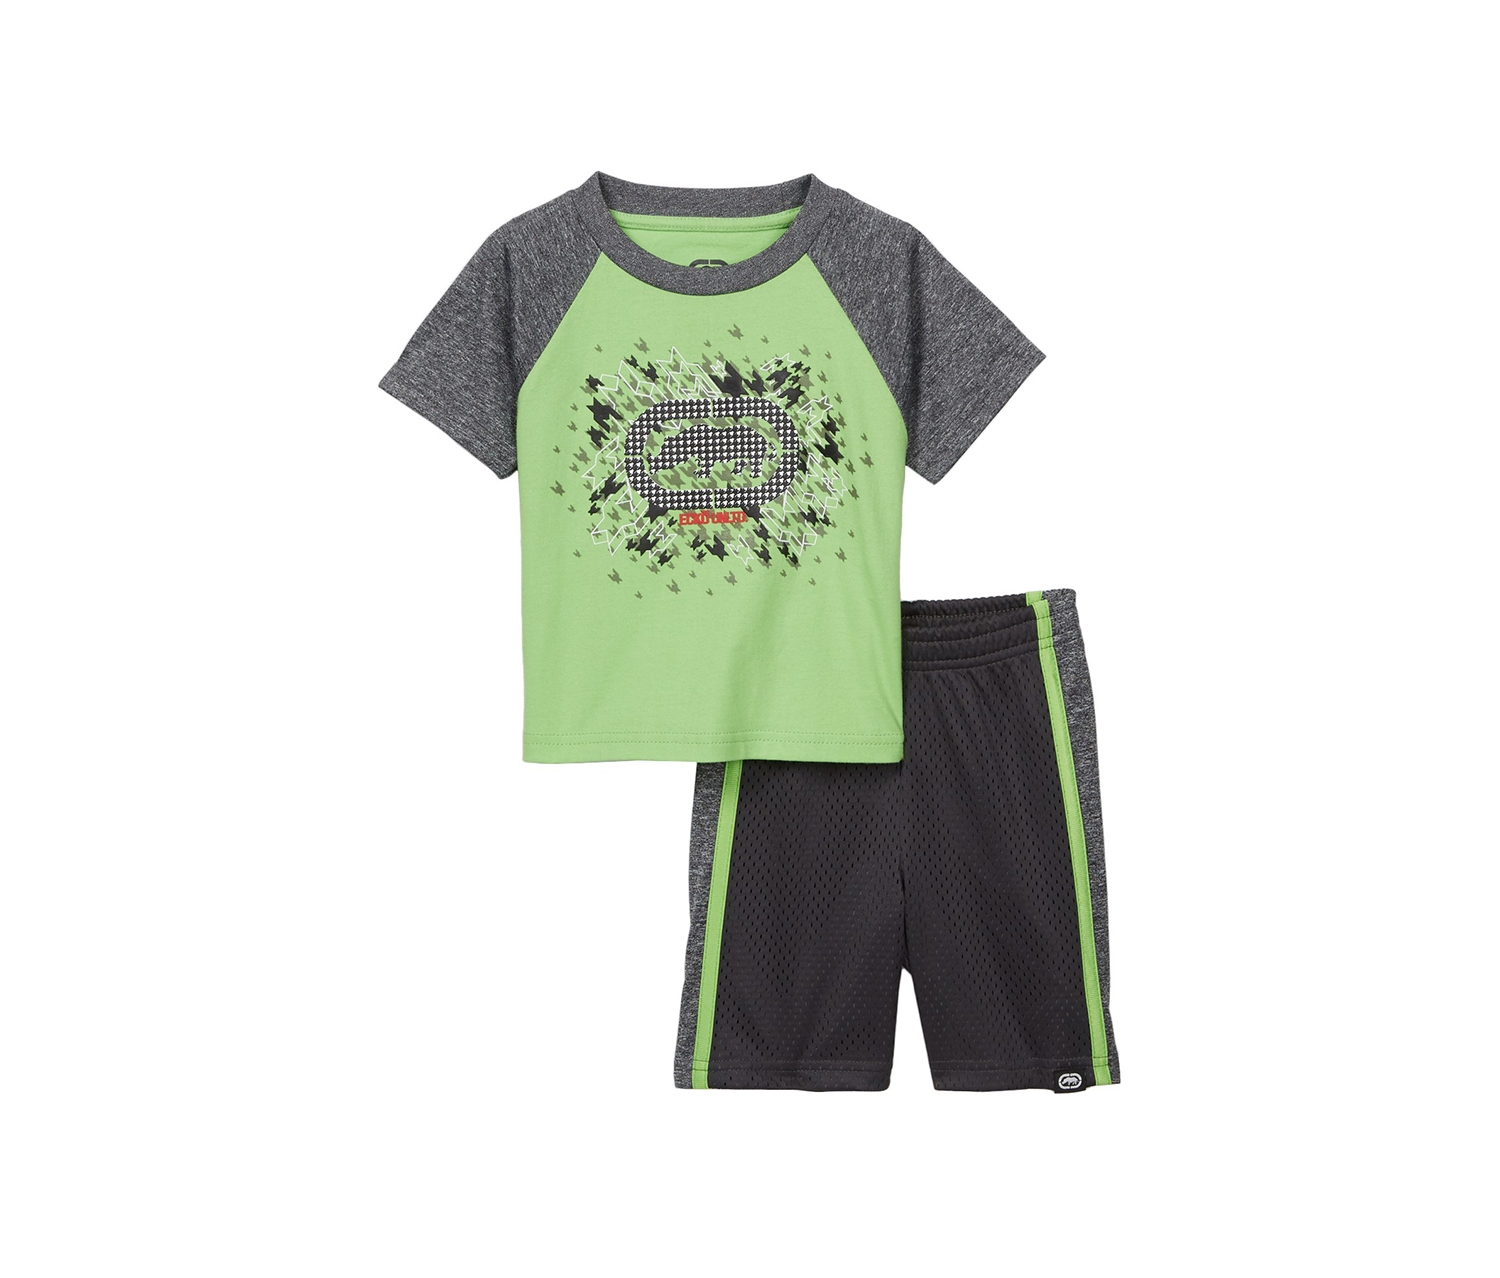 Toddlers Boy's Rhino Tee & Shorts 2-Piece Set, Charcoal/Lime